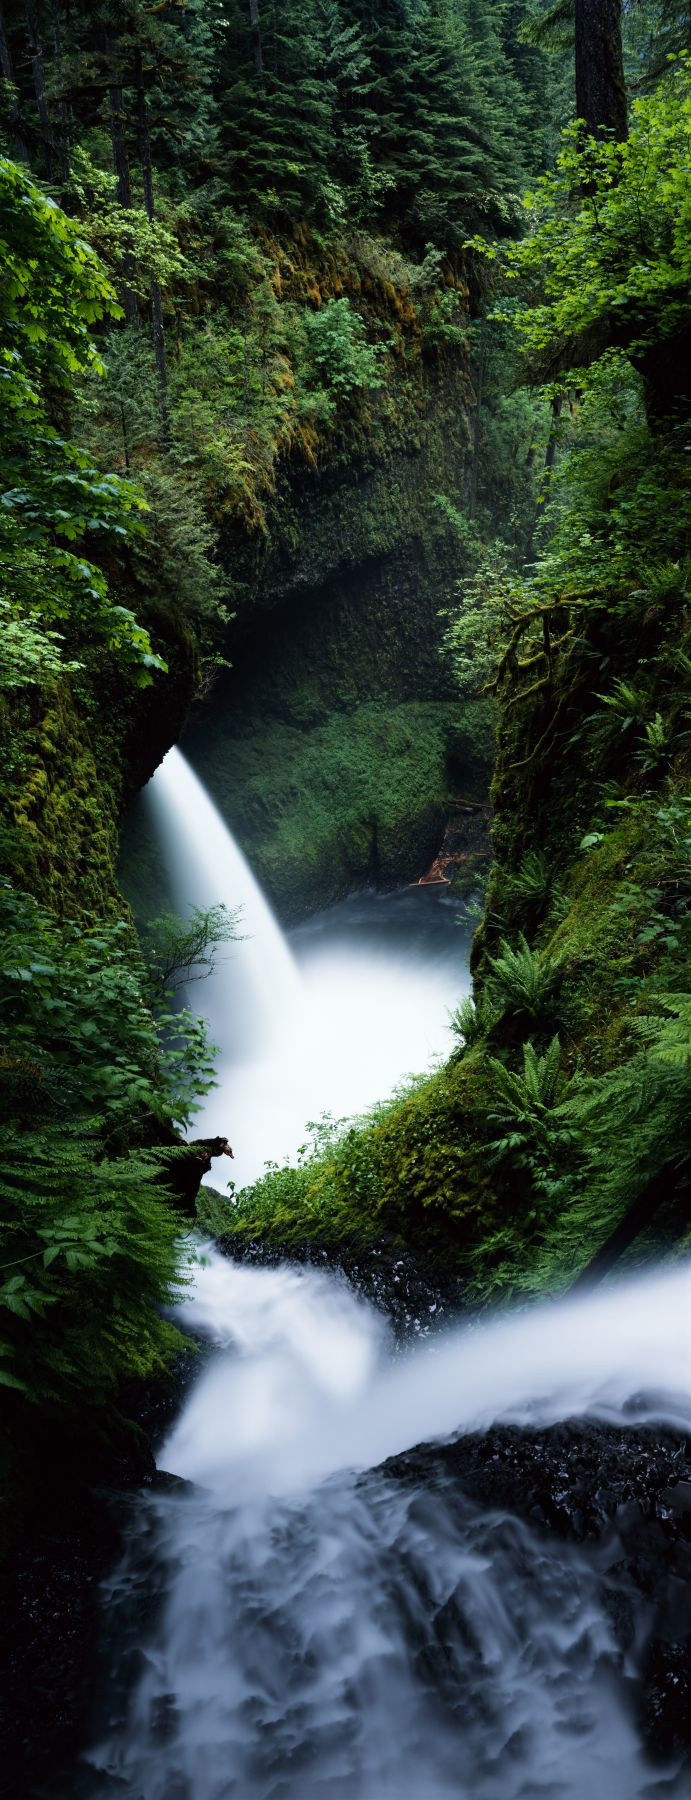 High angle view of waterfall in a forest, Sorenson Falls, Metlako Falls, Eagle Creek, Columbia River Gorge, Oregon, USA